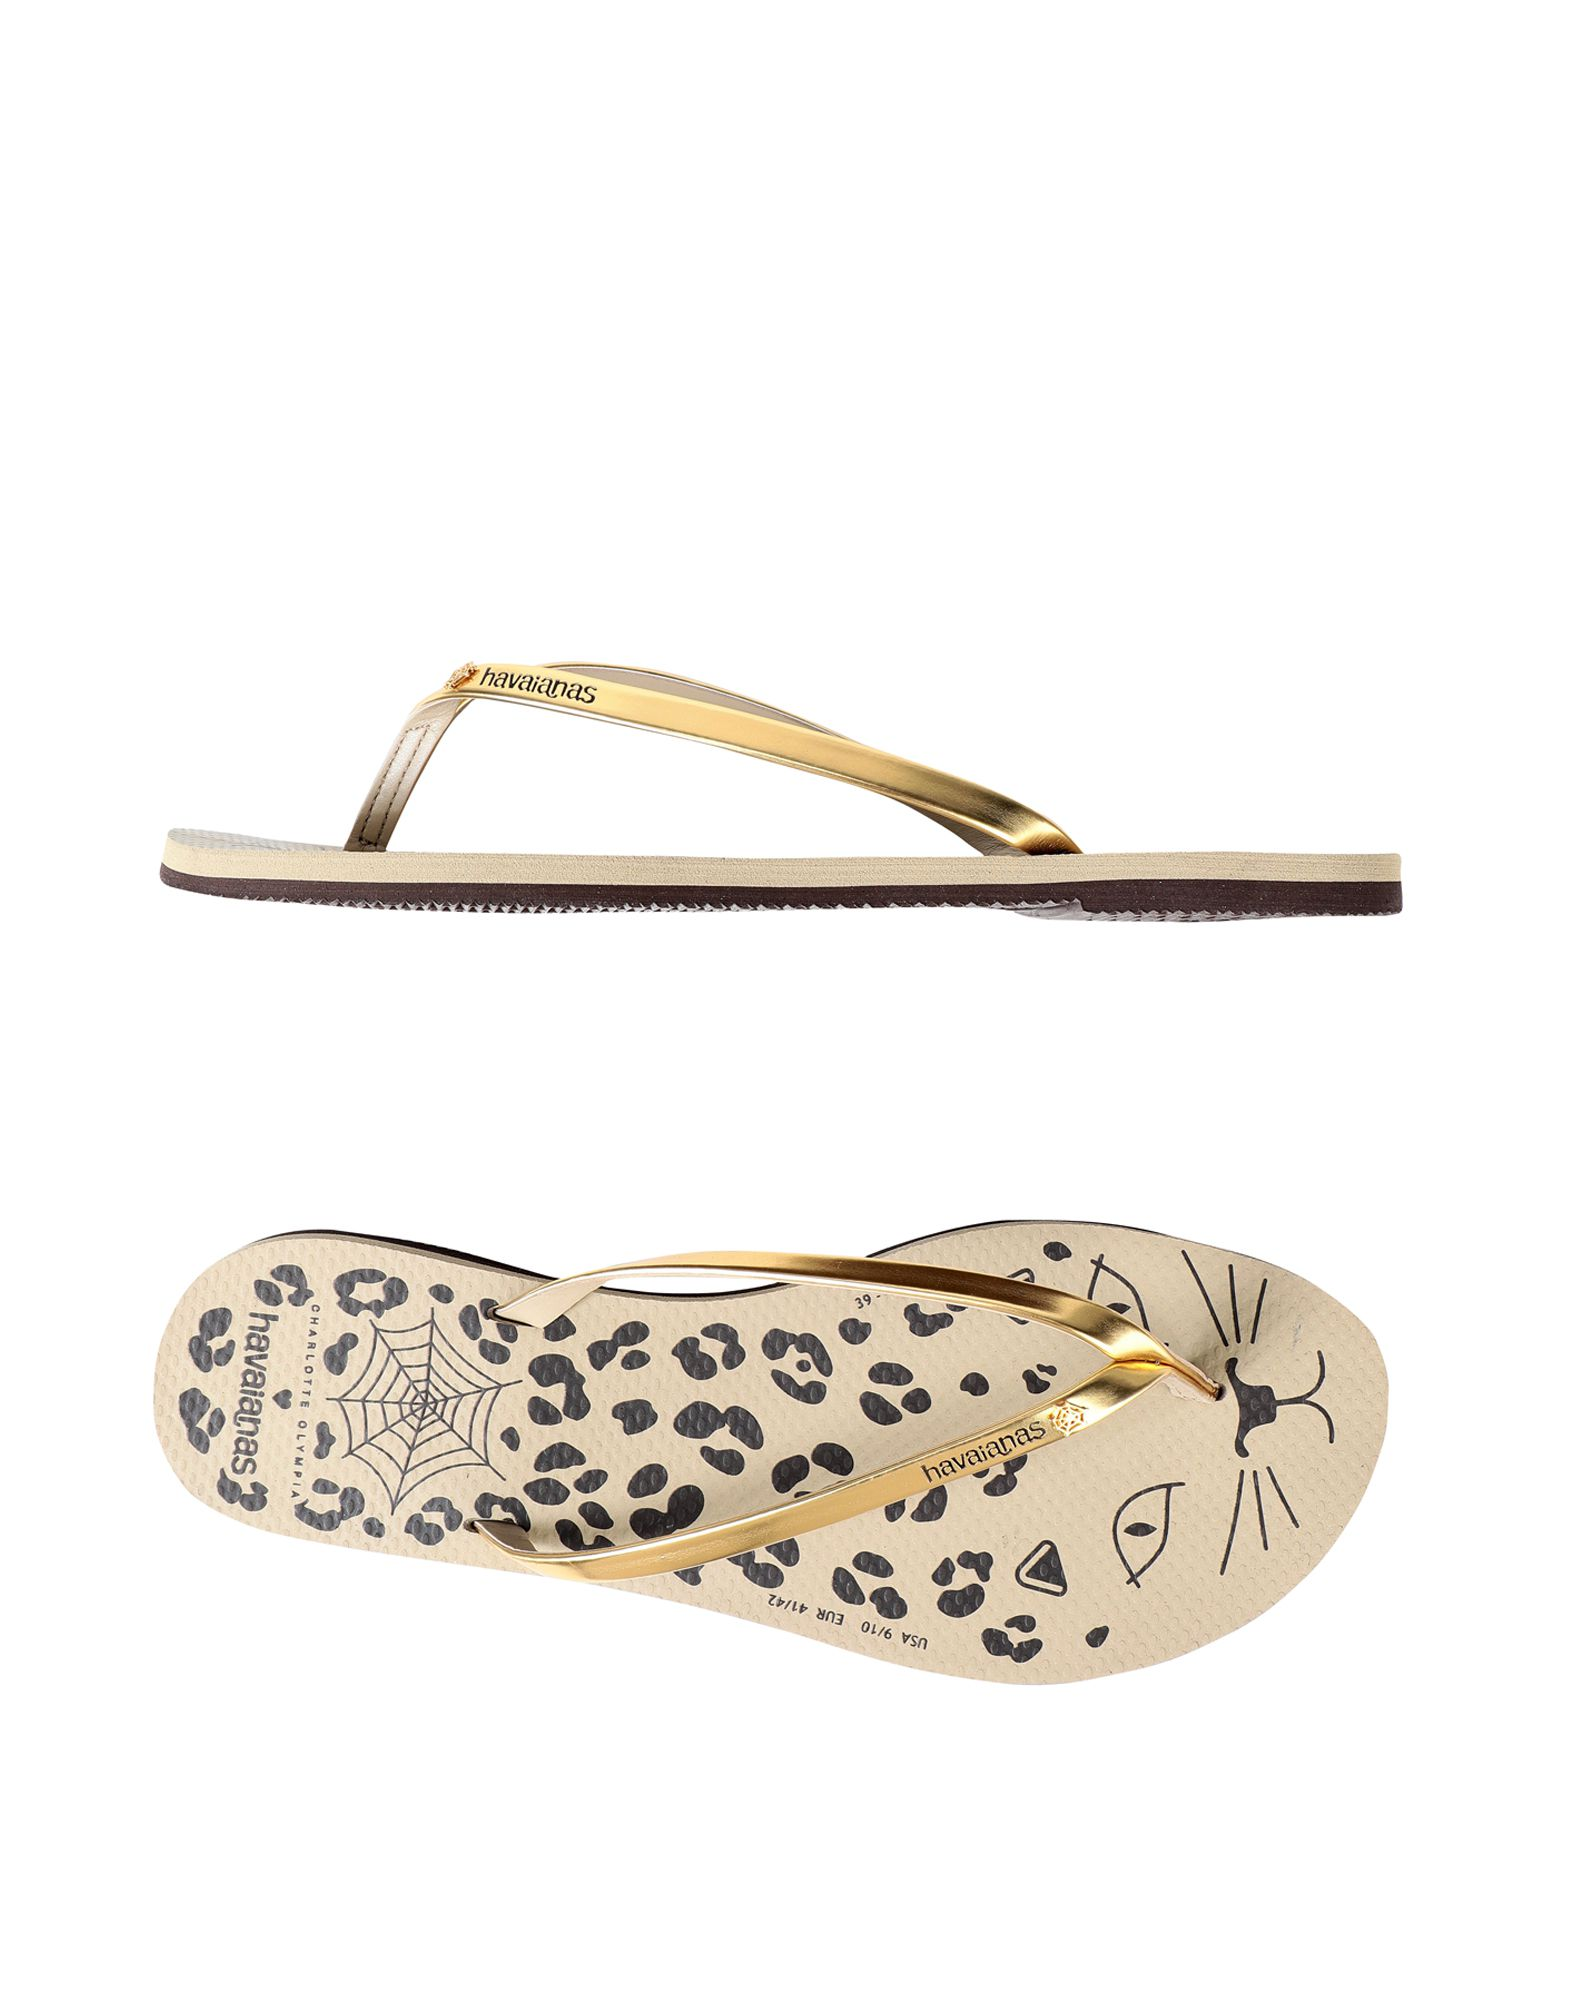 CHARLOTTE OLYMPIA loves HAVAIANAS Вьетнамки карандаш для губ bell precision stay on lip liner 1 цвет 1 variant hex name 805068